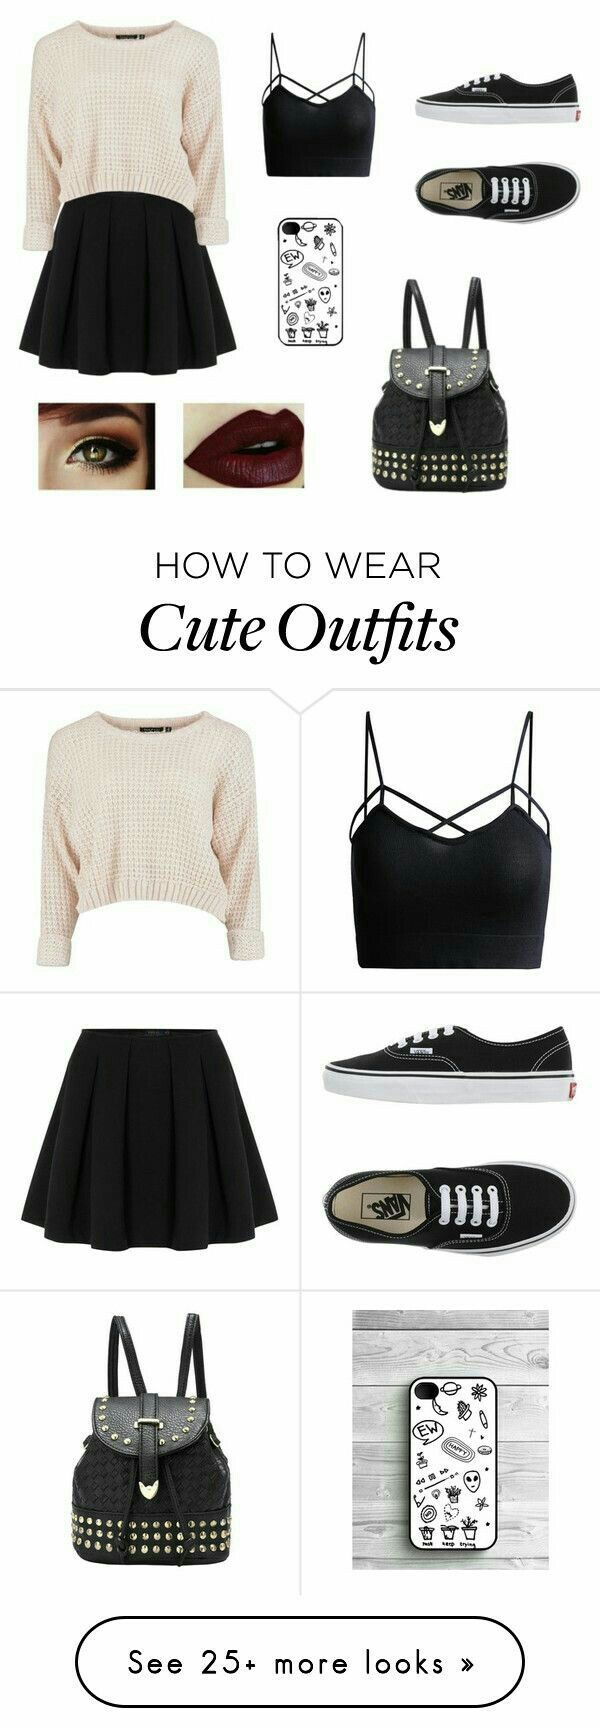 Find More at => http://feedproxy.google.com/~r/amazingoutfits/~3/Y8reaz4Xg0s/AmazingOutfits.page